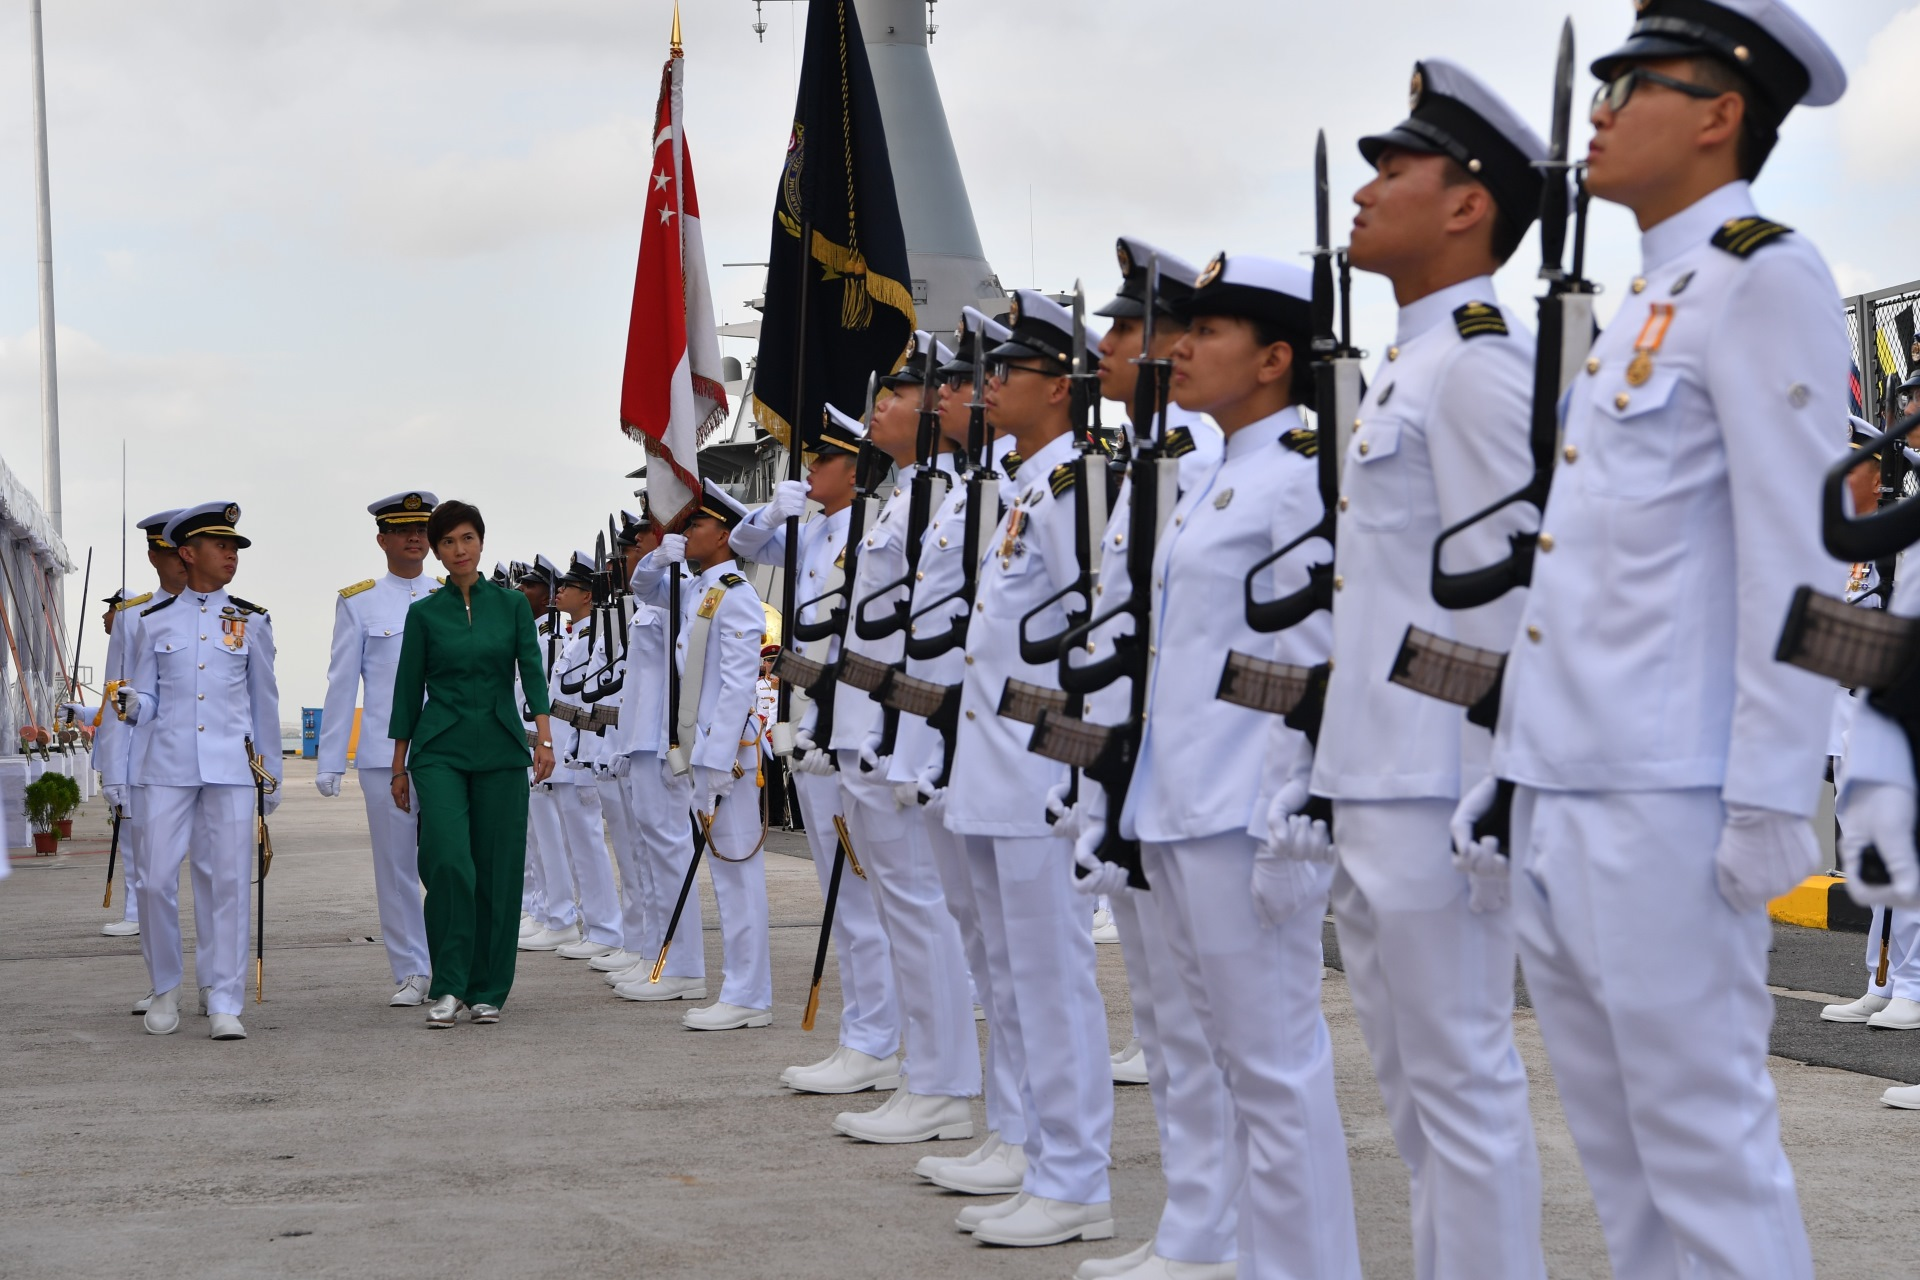 Minister for Manpower and Second Minister for Home Affairs Josephine Teo reviewing the Guard of Honour at the commissioning ceremony of the final three LMVs, RSS Fortitude, RSS Dauntless and RSS Fearless.